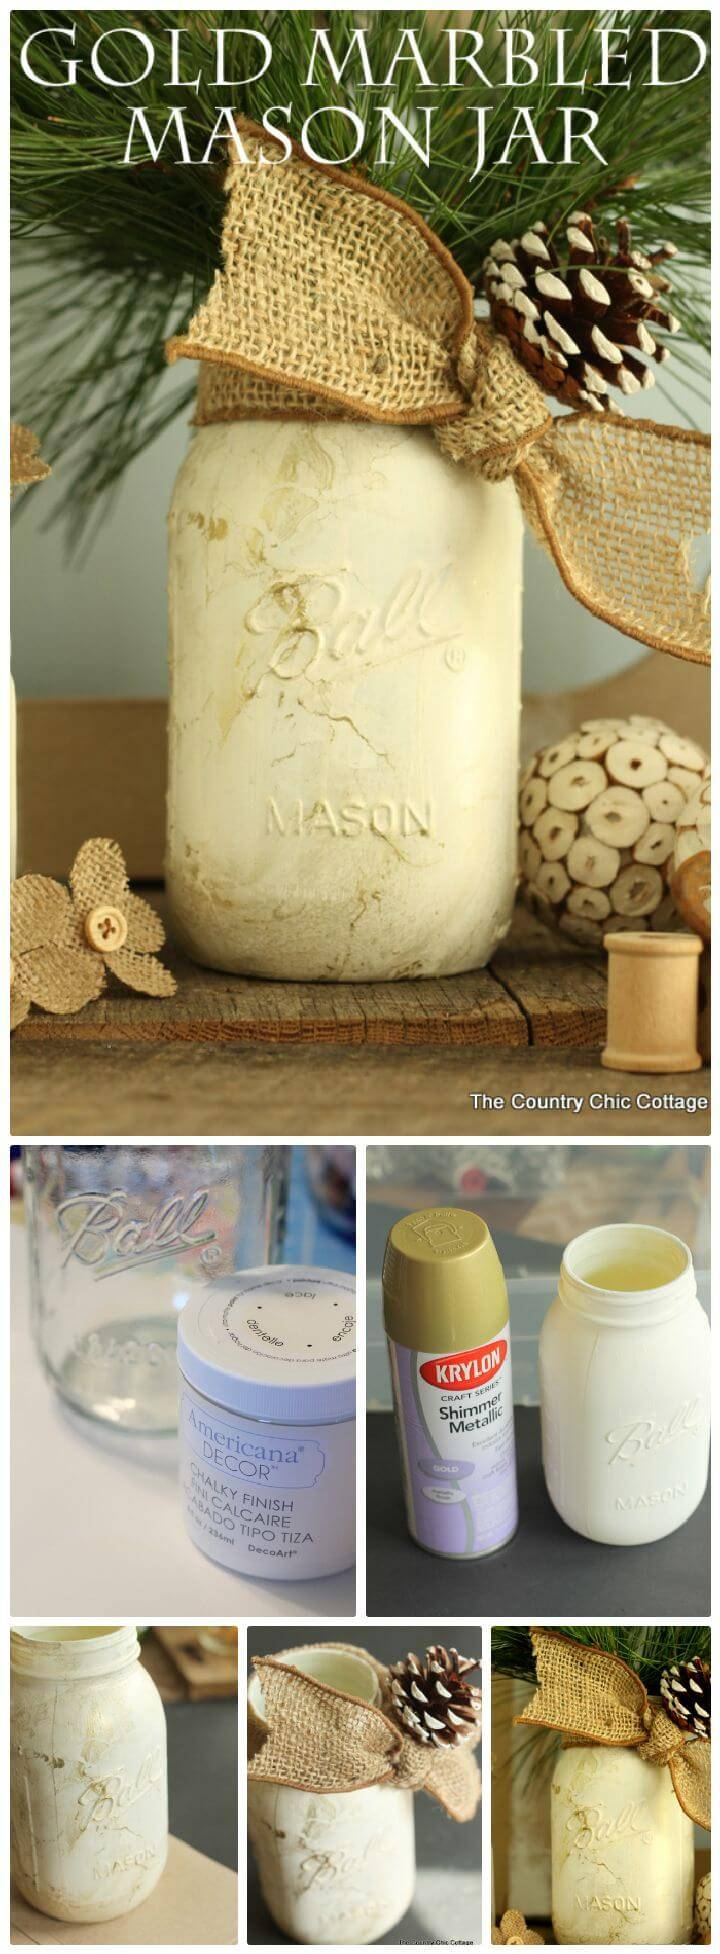 DIY Gold Marbled Mason Jar